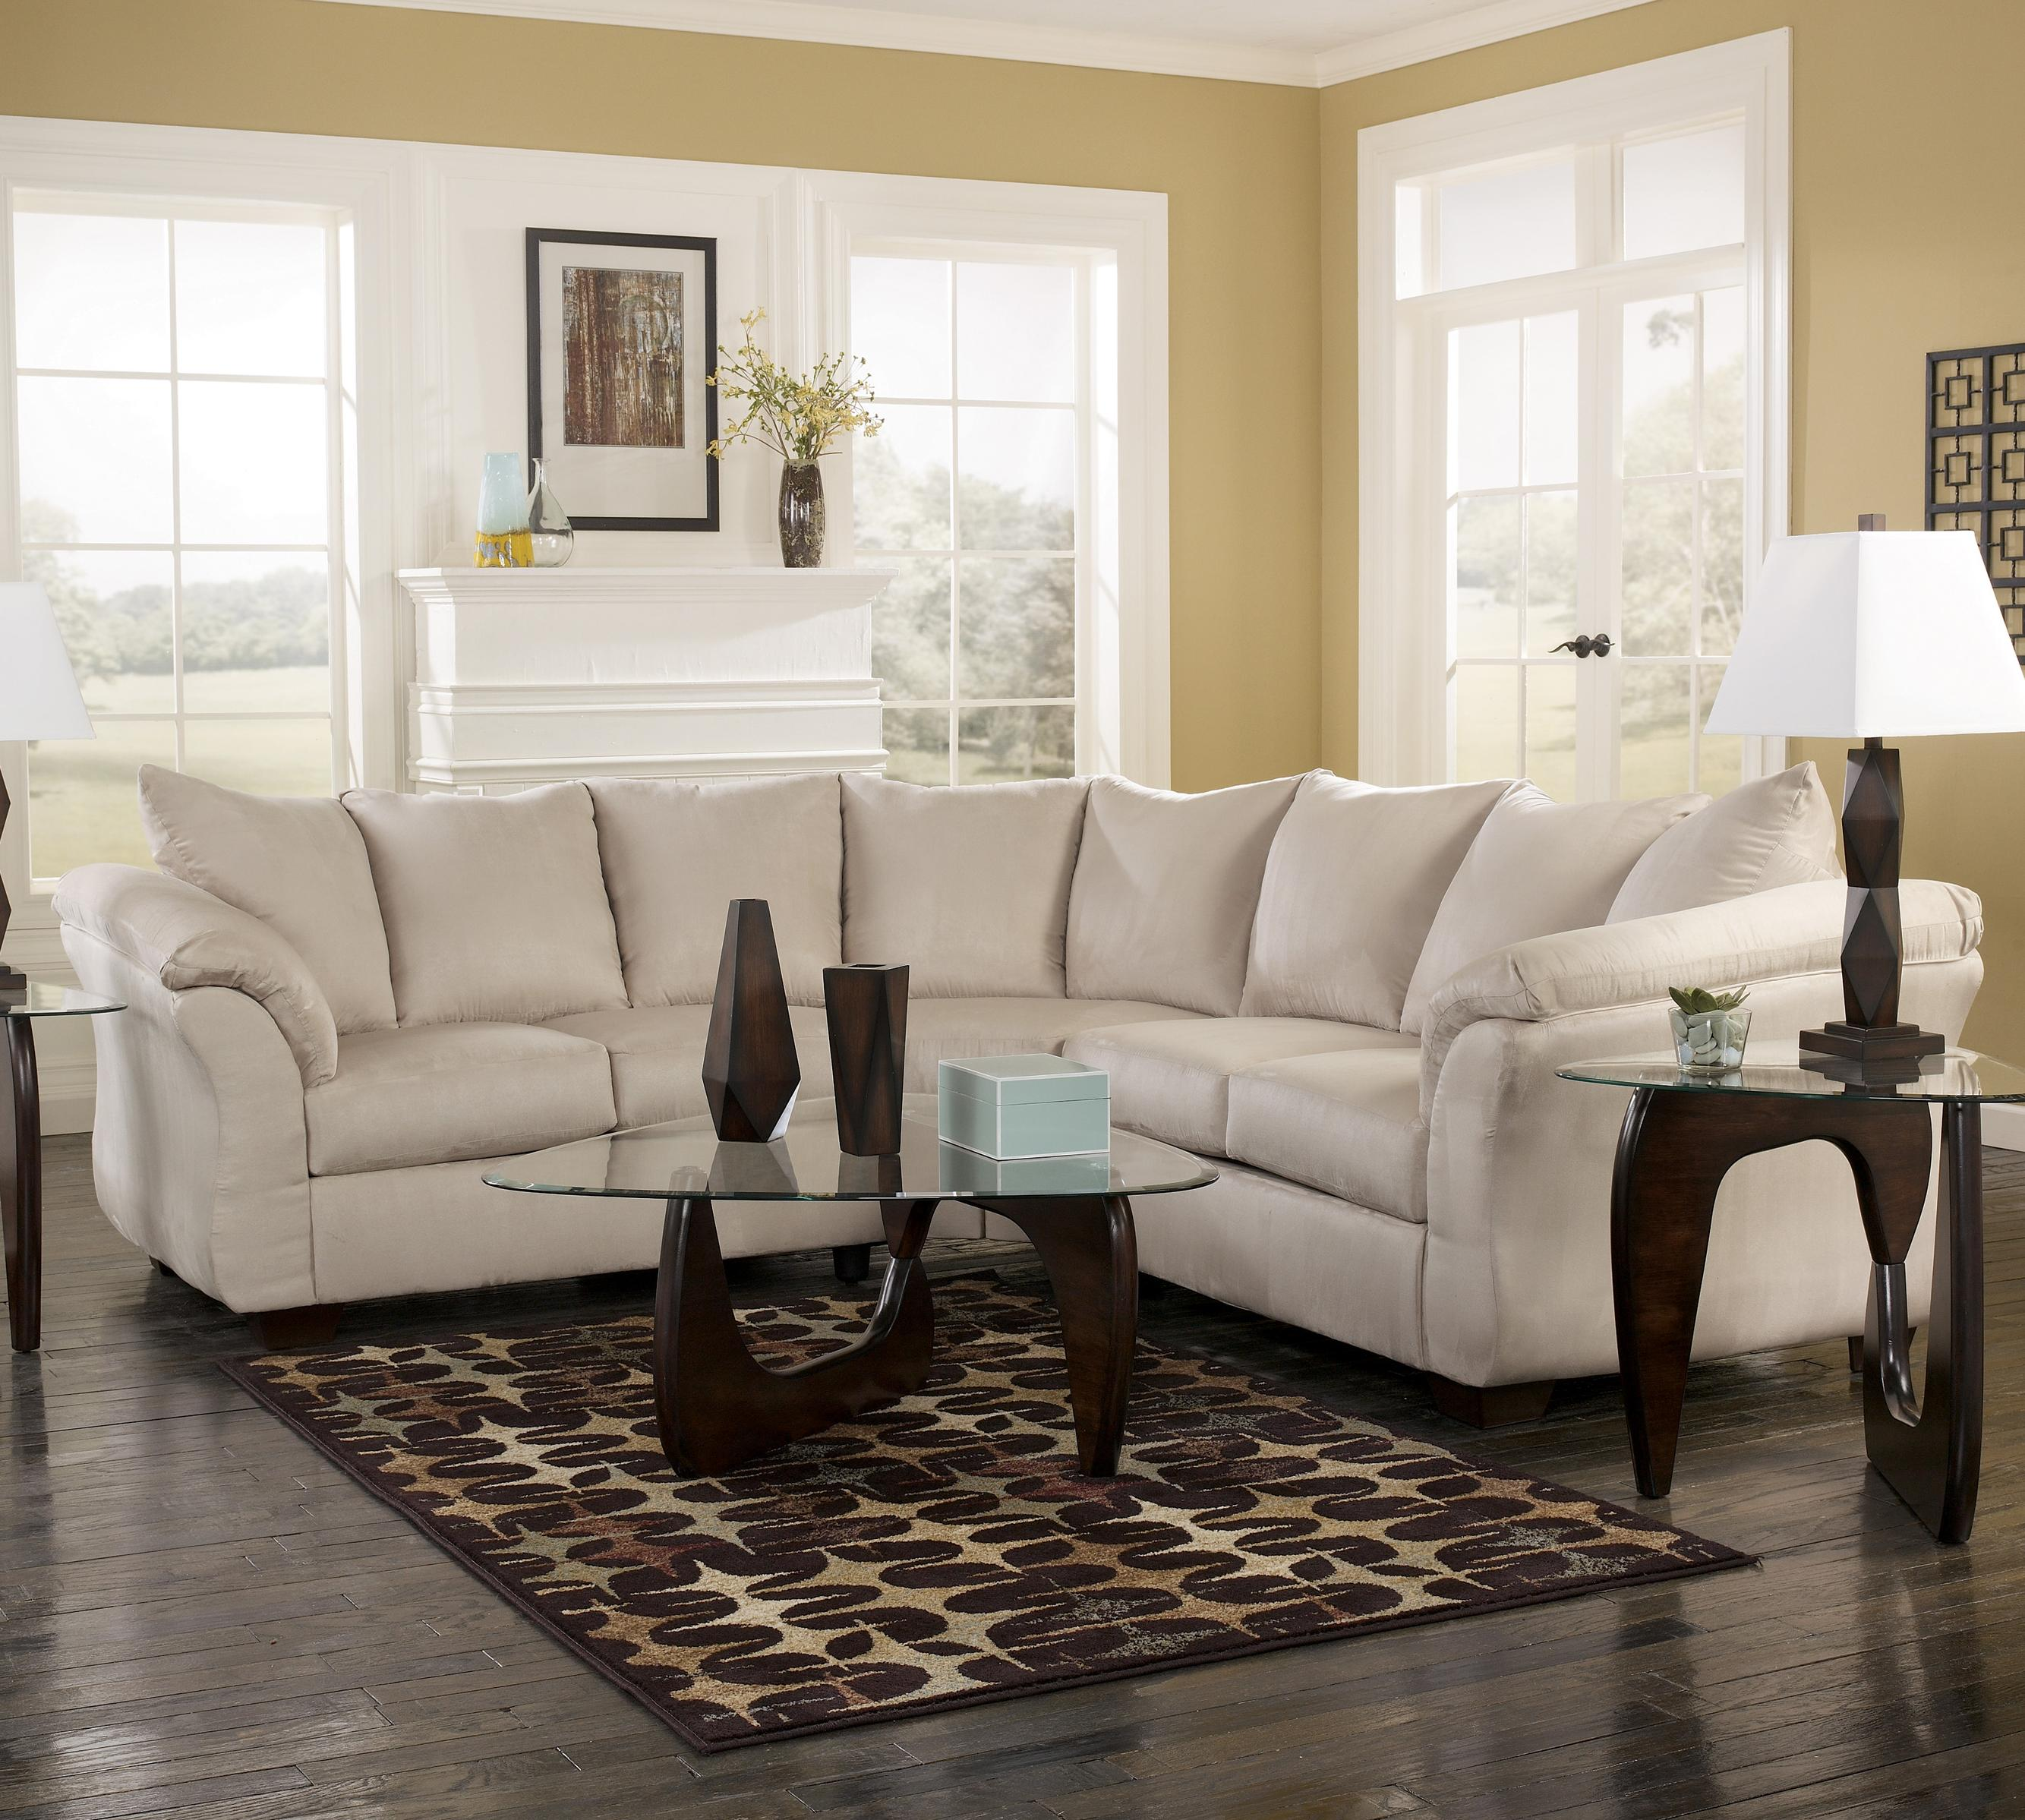 Sectional Sofa Pillows & Furniture Outstanding Neutral Colors For